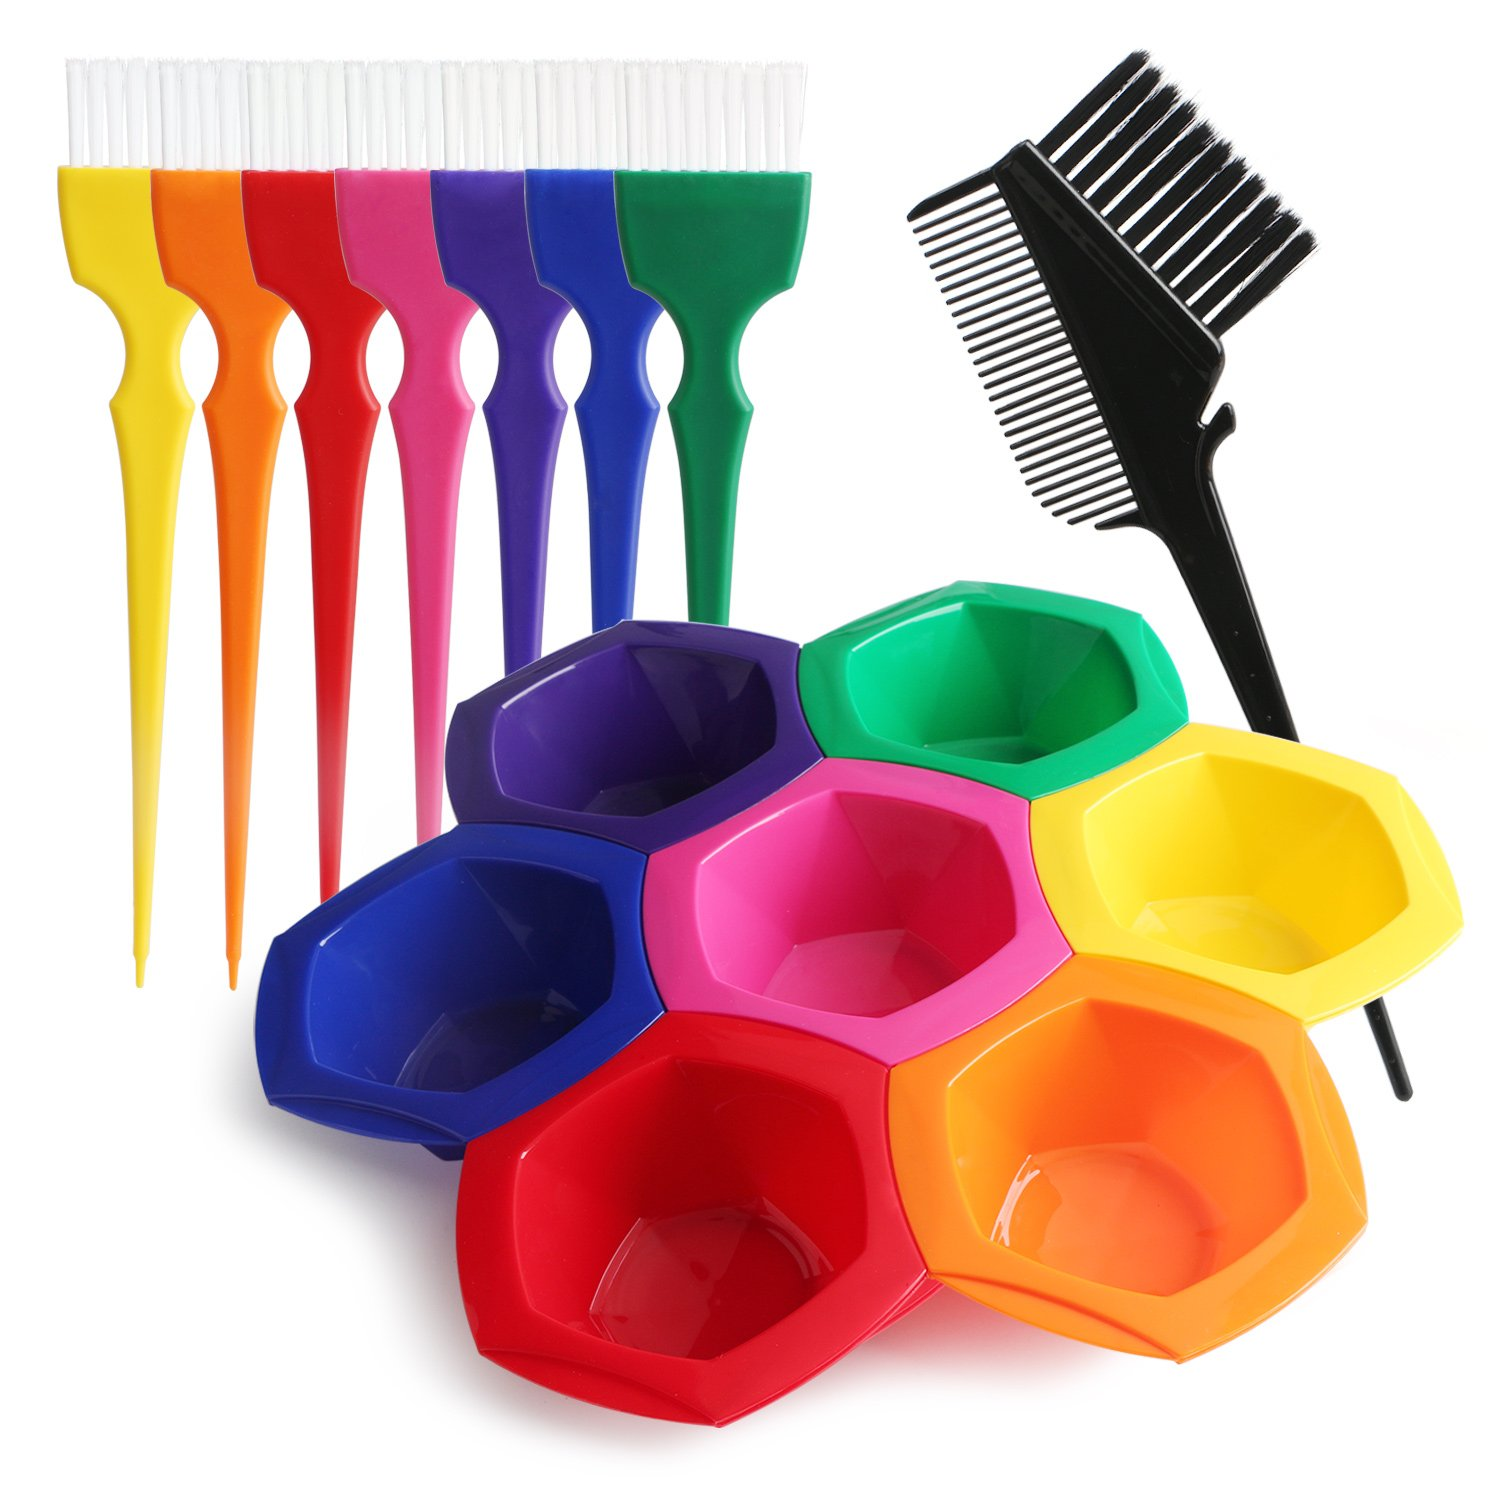 Hair Color Bowl and Brush Set, Segbeauty Hair Coloring Highlighting Tools on Hair Dye, Rainbow Hair Color Mixing Bowls Brushes Comb for Dyed Hair, Omber Hair Dye or Art Paint Palatte Seg-Beauty